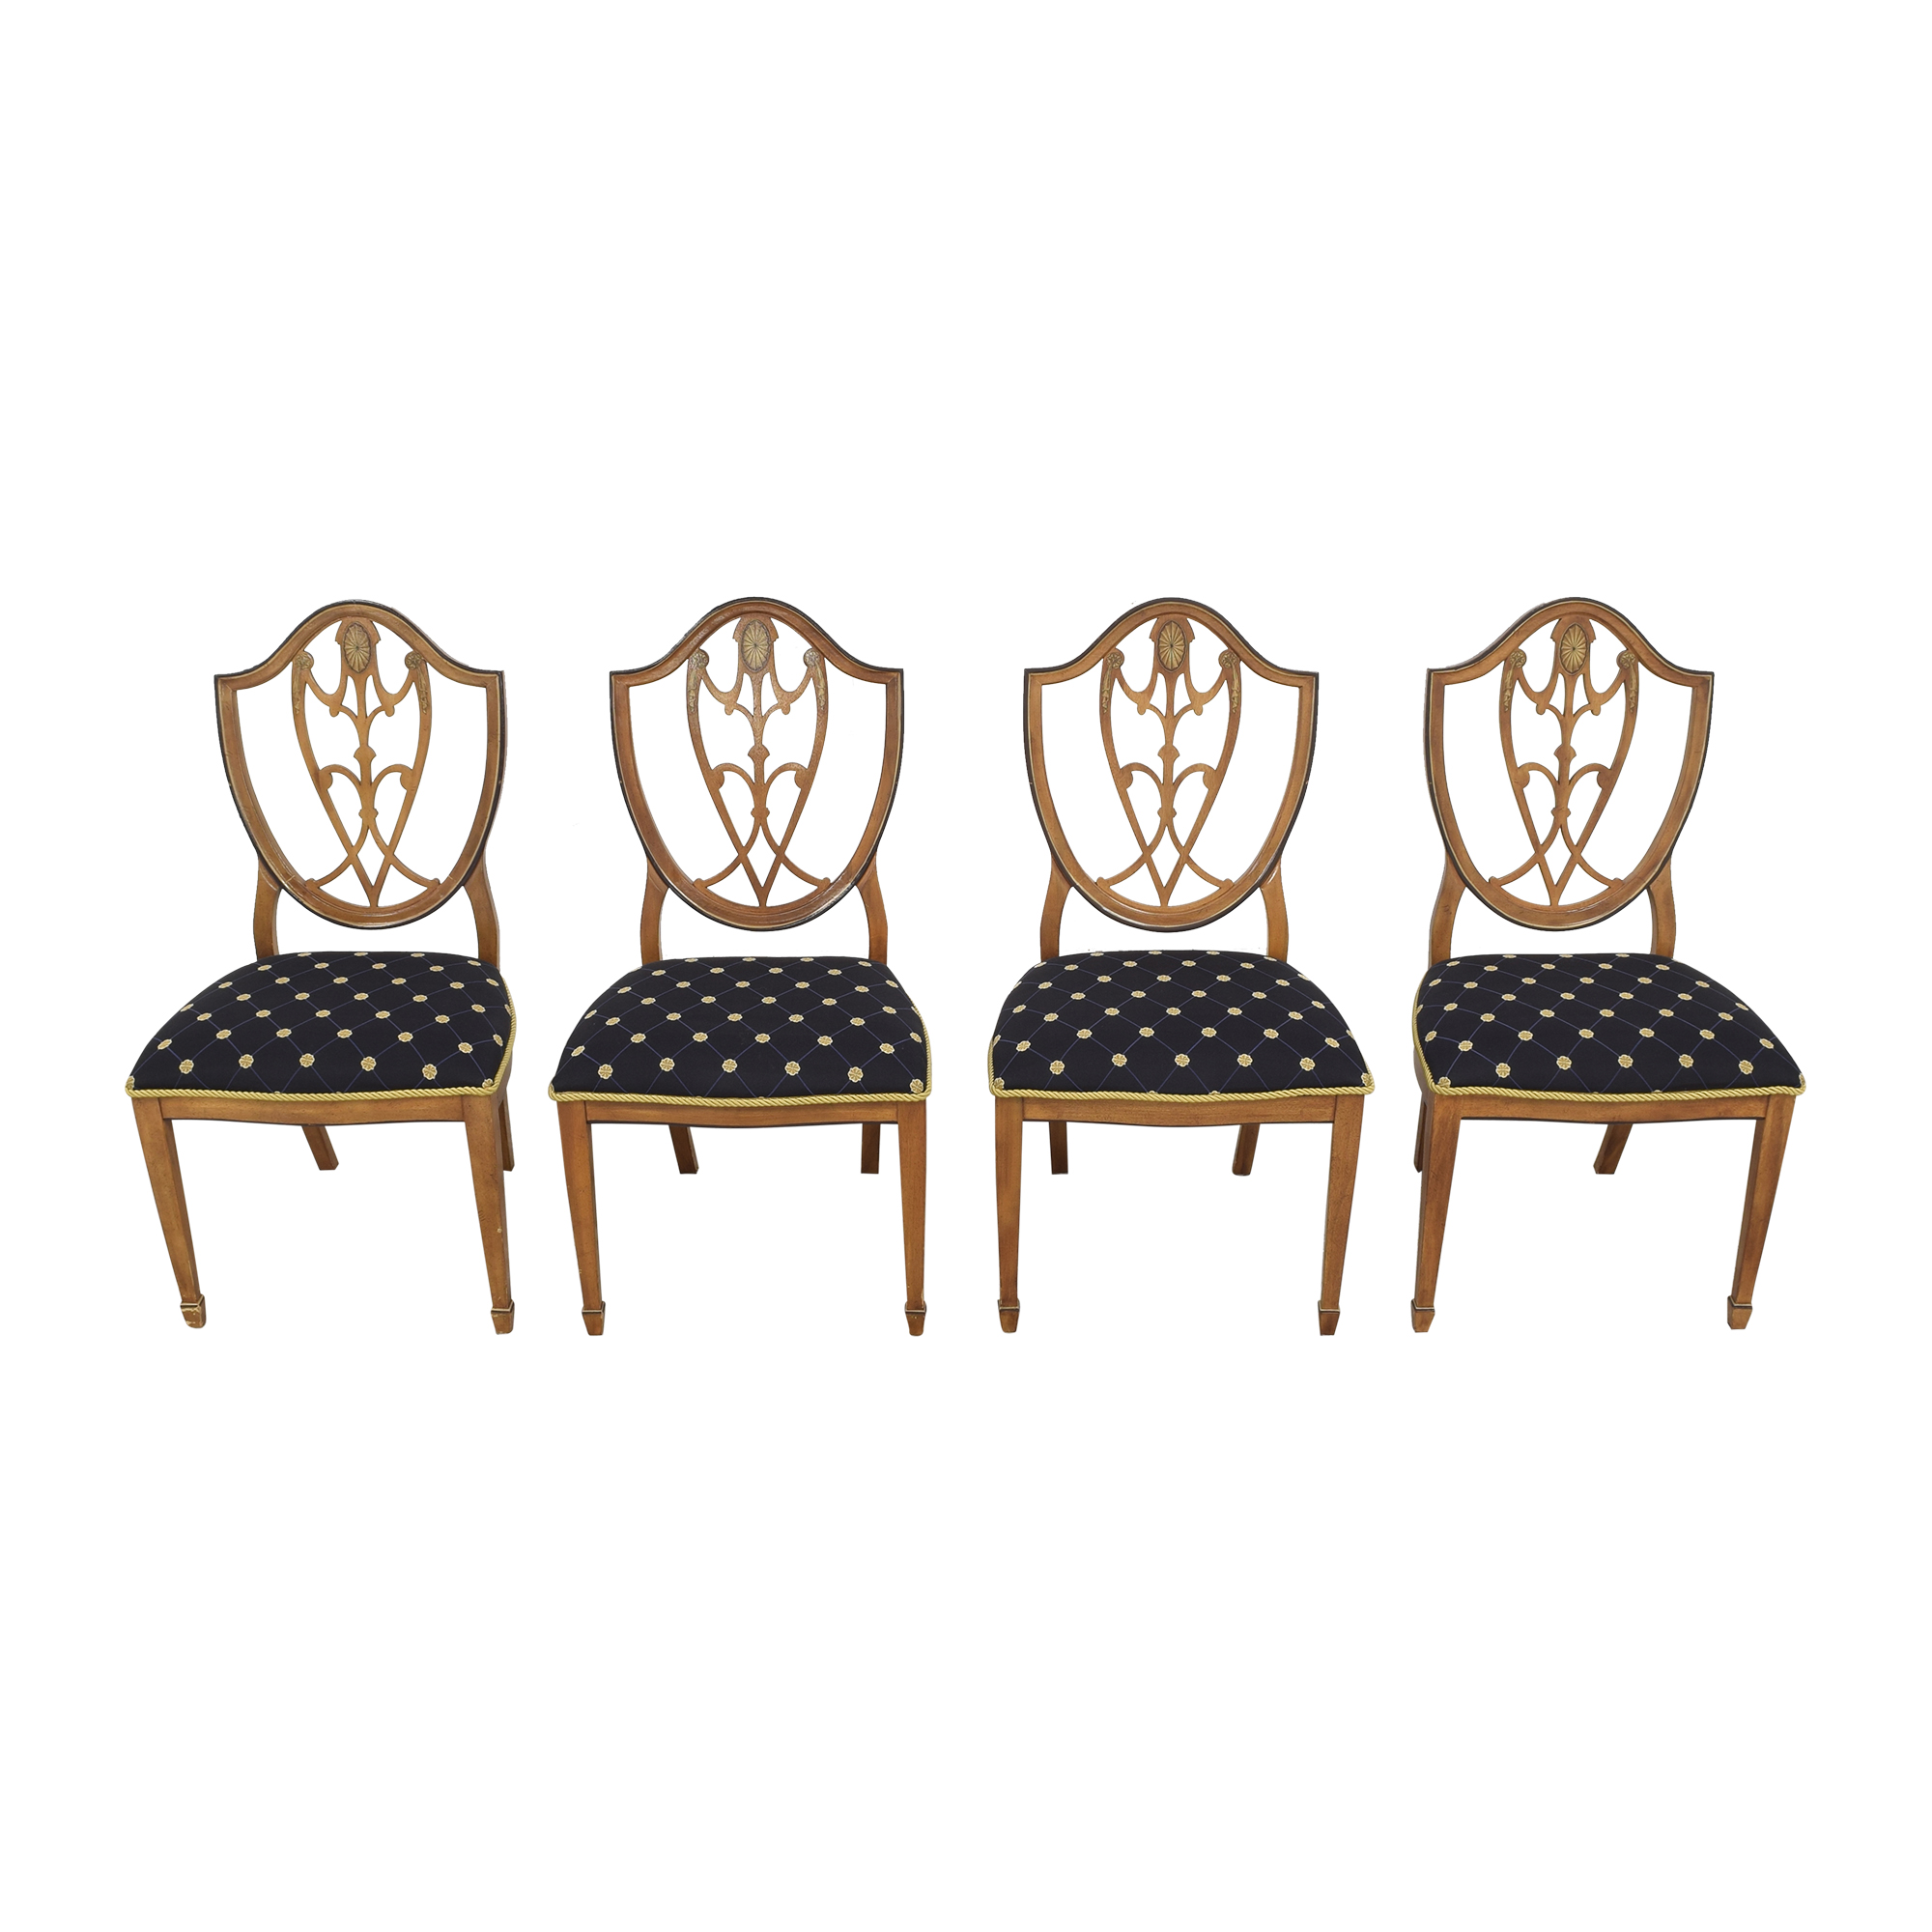 Drexel Drexel Upholstered Dining Chairs on sale